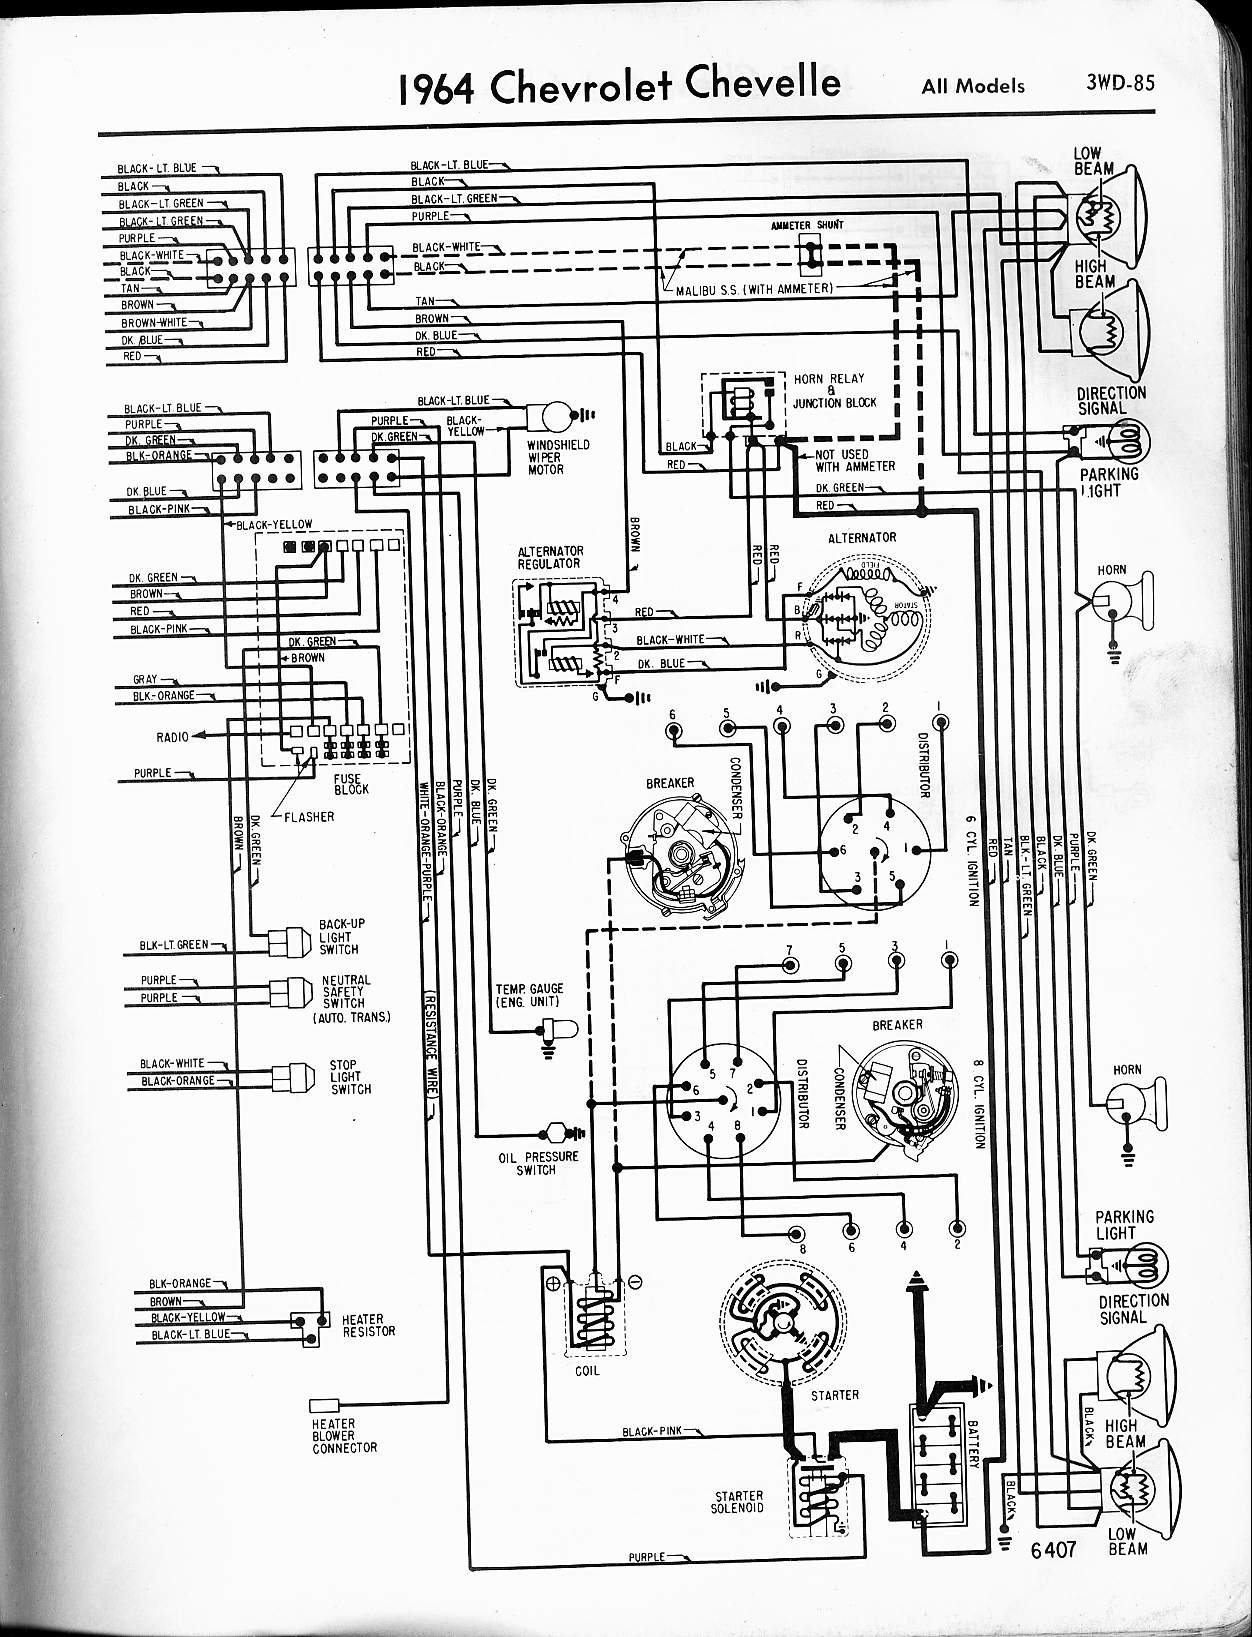 MWireChev64_3WD 085 66 chevelle wiring diagram 90 mustang wiring diagram \u2022 free wiring 1966 nova wiring diagram at eliteediting.co